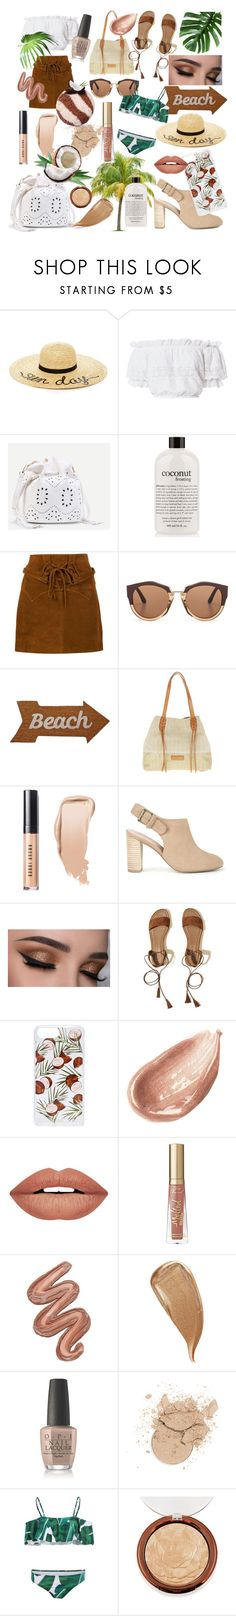 """summer style- coconut inspired"" by que2001 ❤ liked on Polyvore featuring Eugenia Kim, LoveShackFancy, philosophy, Faith Connexion, Marni, Mud Pie, Liebeskind, Bobbi Brown Cosmetics, Sole Society and Hollister Co."